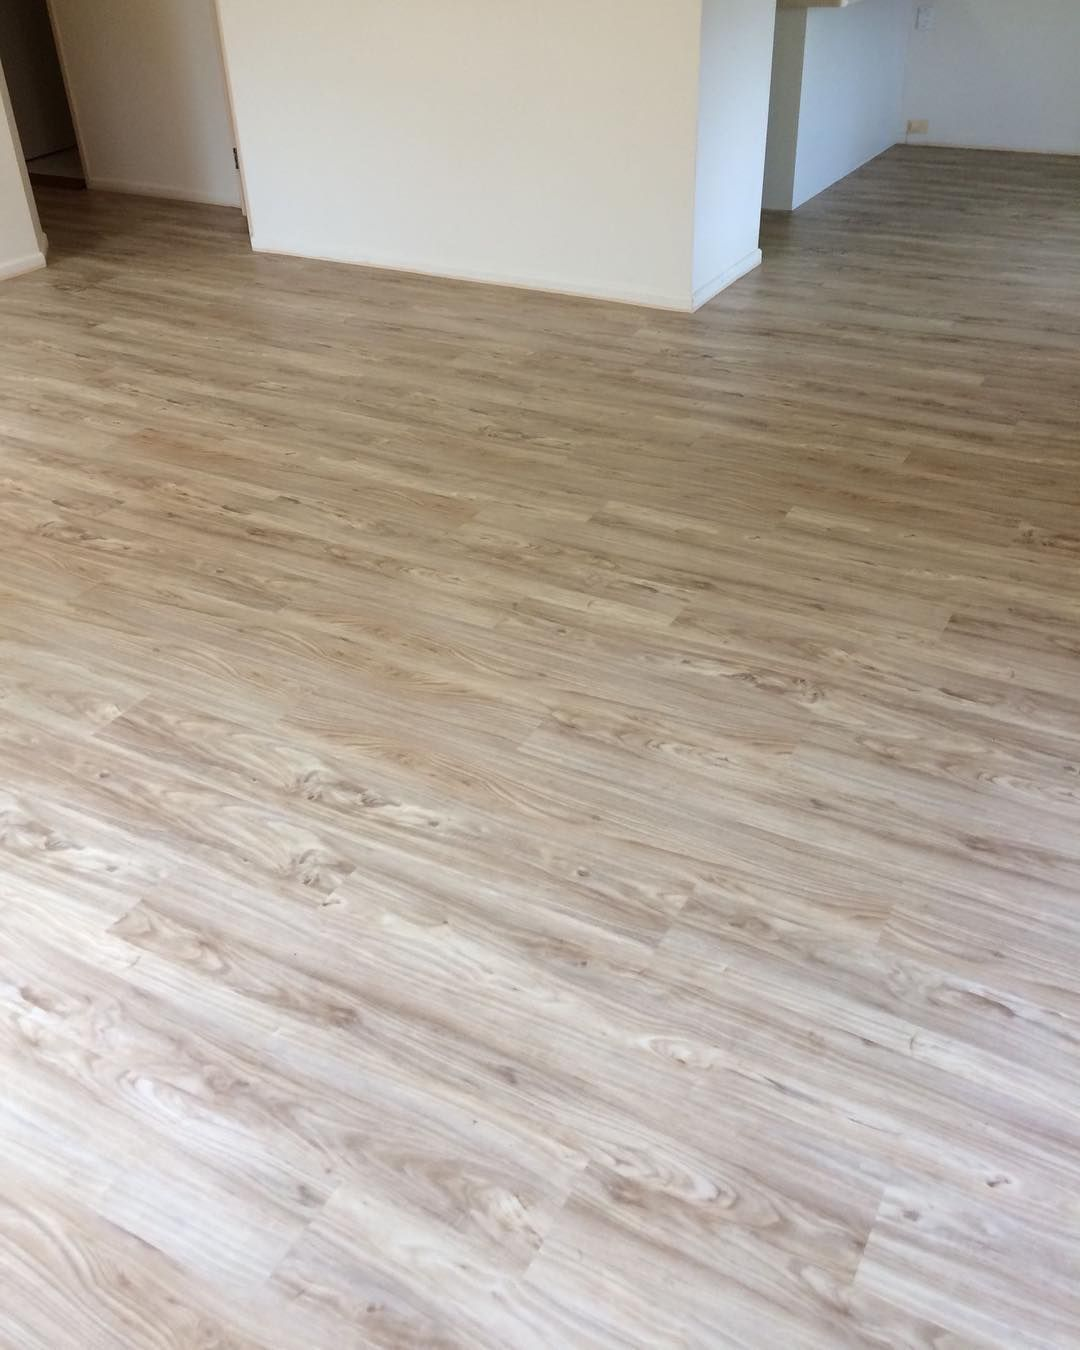 Illusions Colour Ashwood Renovation Newflooring Fitout Looselay Vinylplanks Illusions Ironbark Ca House Flooring Luxury Flooring Commercial Flooring